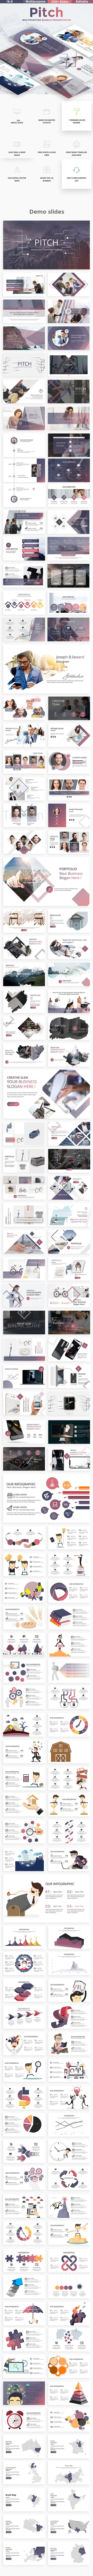 Pitch Multipurpose Google Slide Template | Pitch, Template and ...